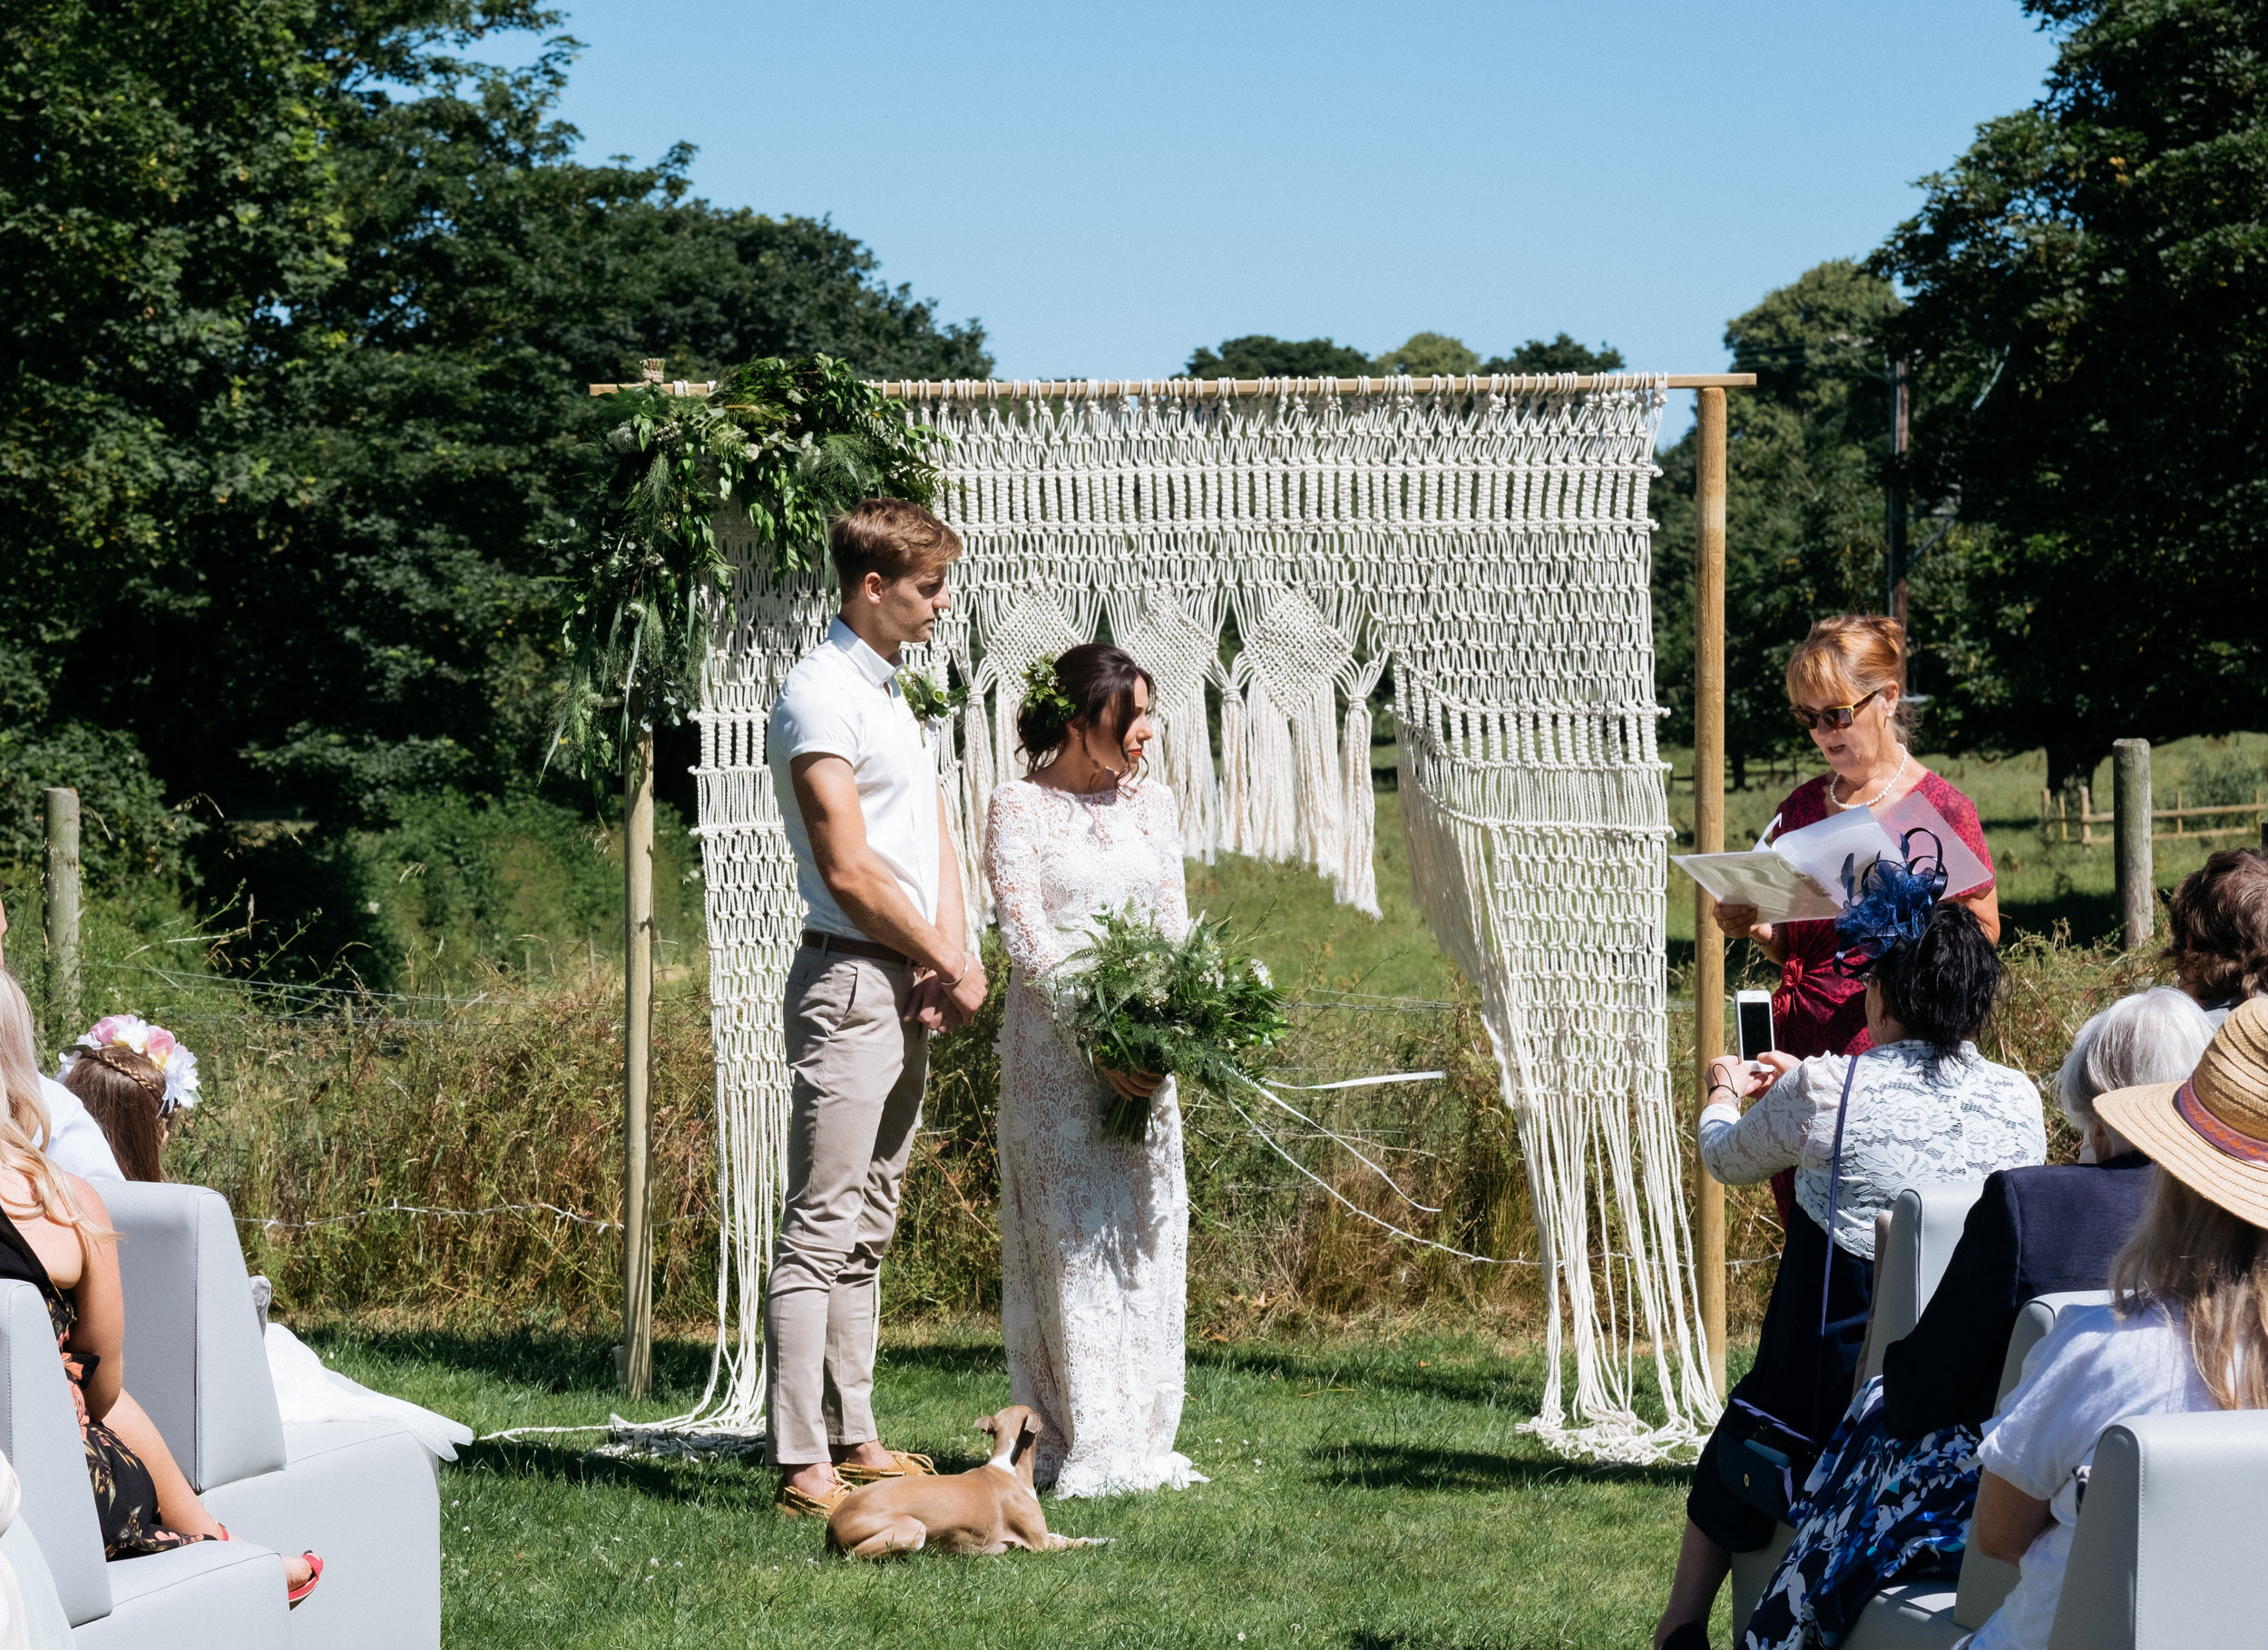 Bride and groom getting married in outdoor wedding ceremony with Italian greyhound and macrame wedding arch